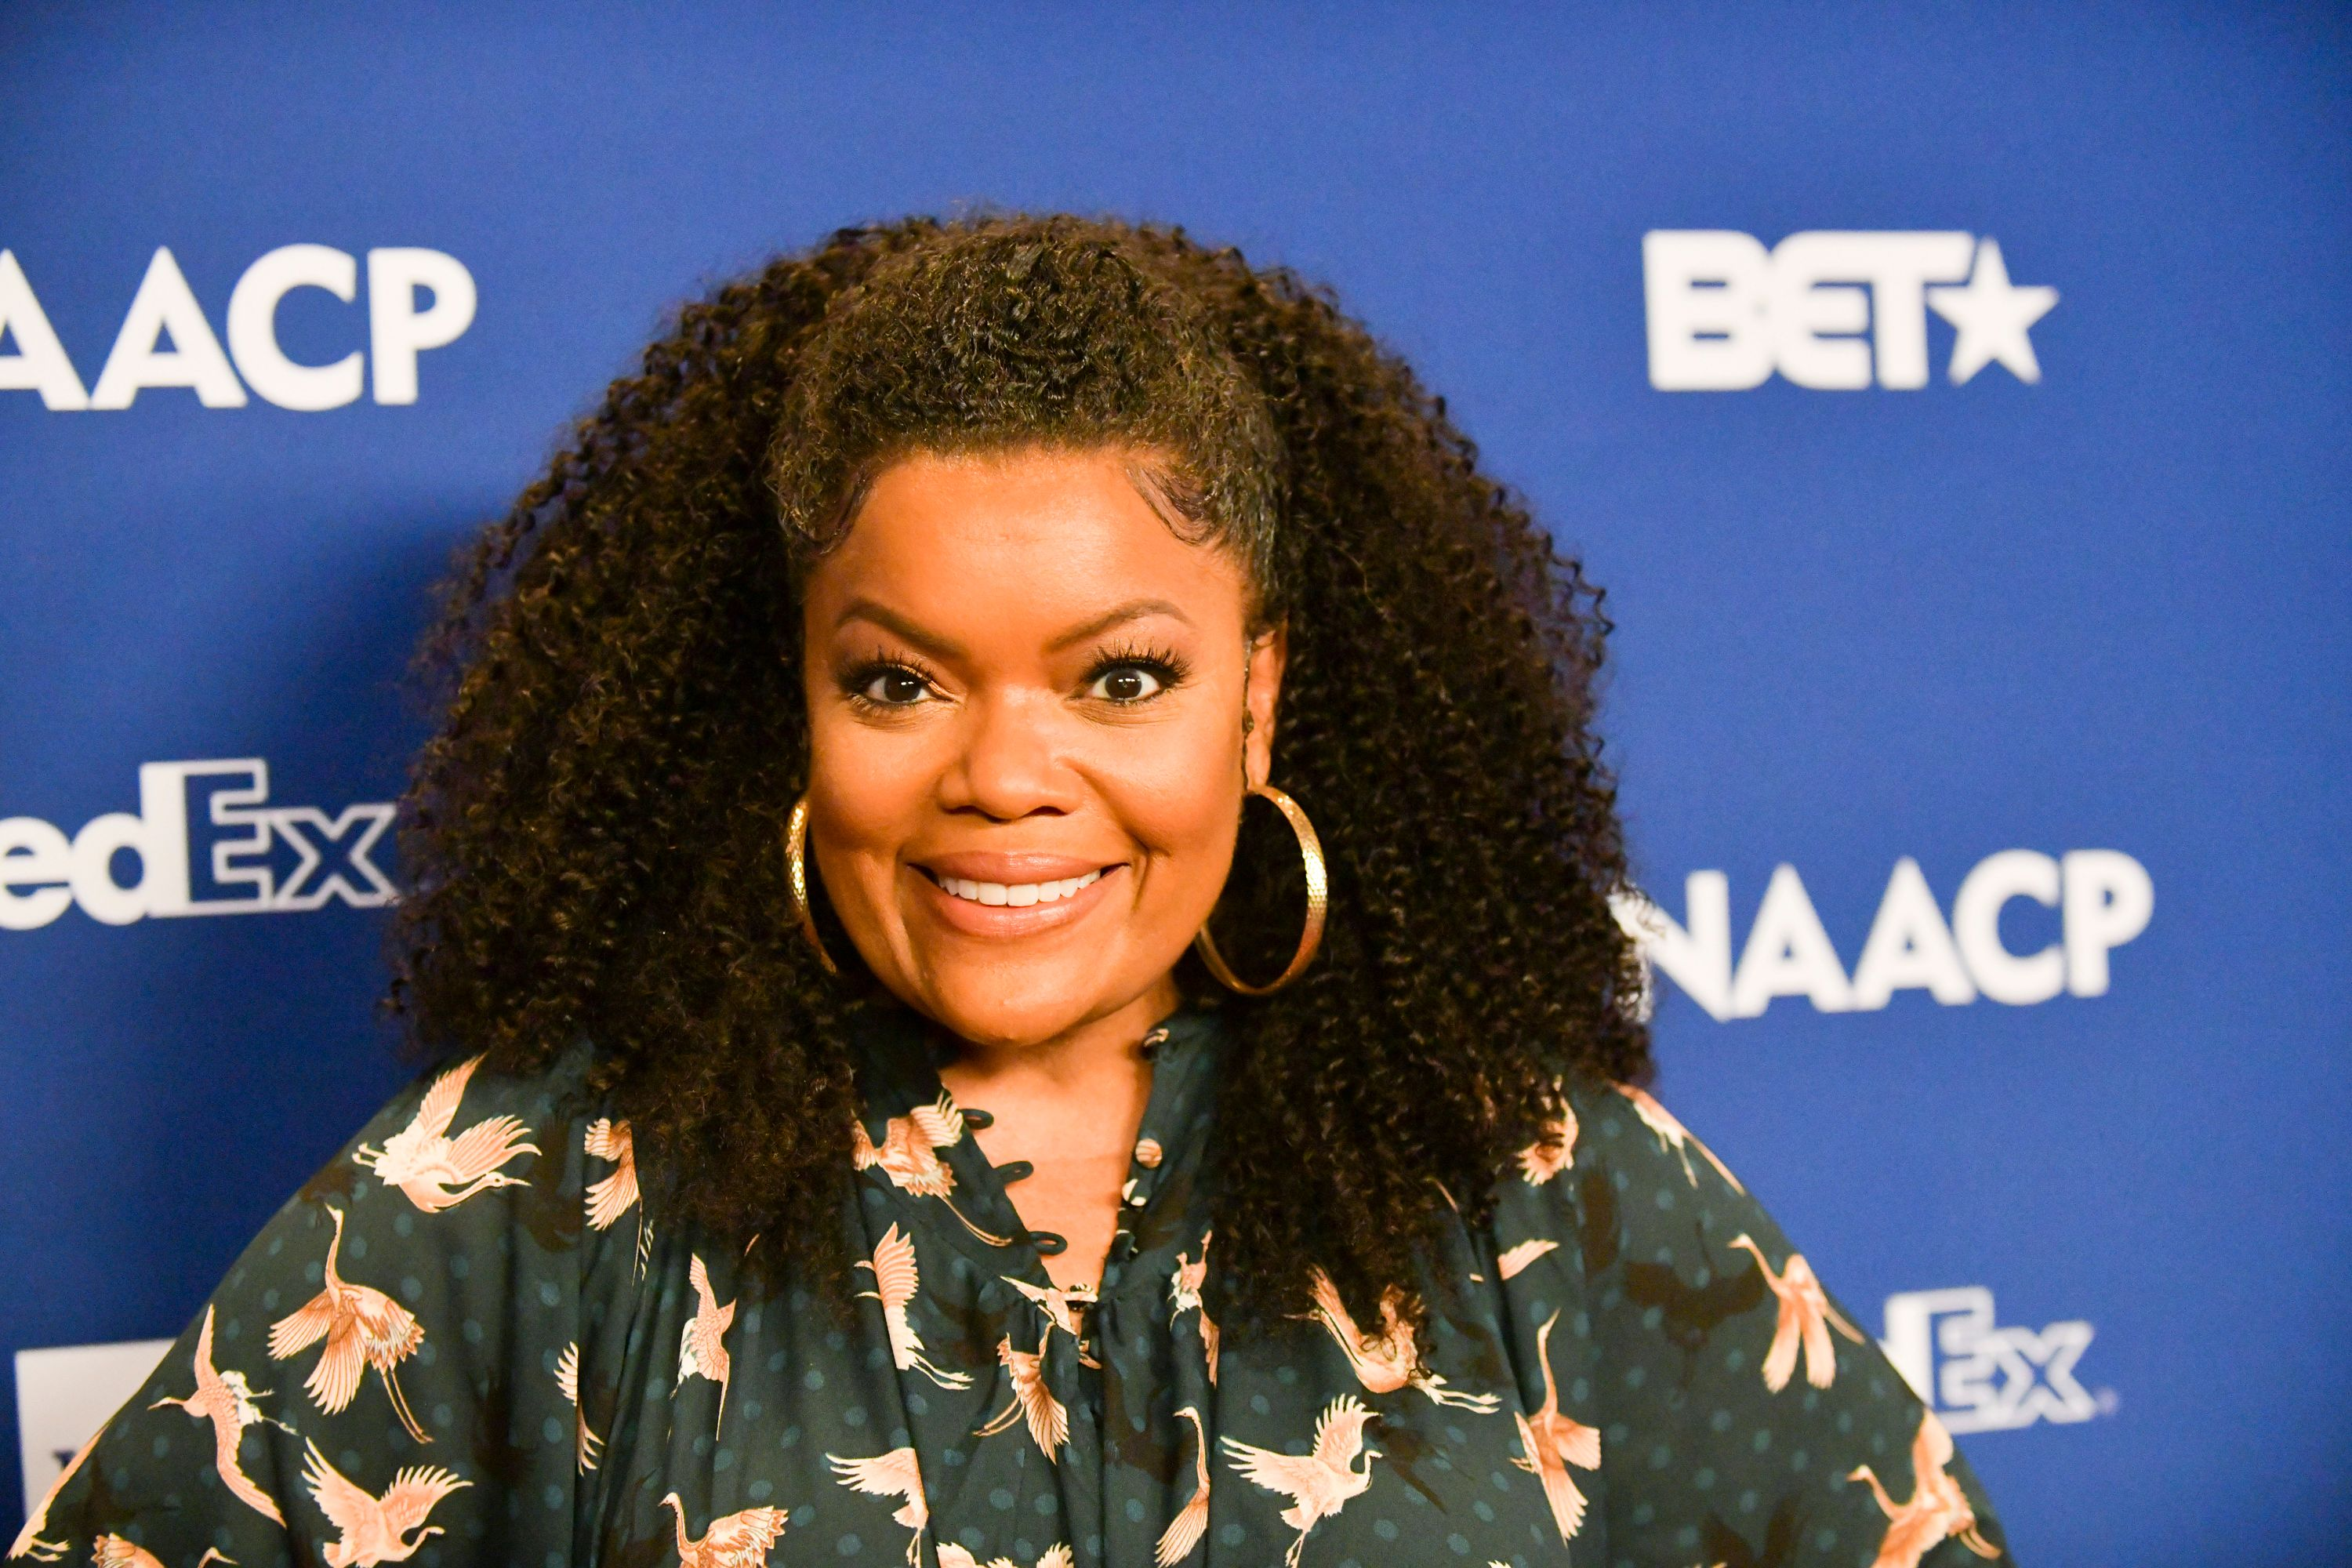 Yvette Nicole Brown at the NAACP Image Awards - Nominees Luncheon on February 01, 2020 in Pasadena.   Photo: Getty Images